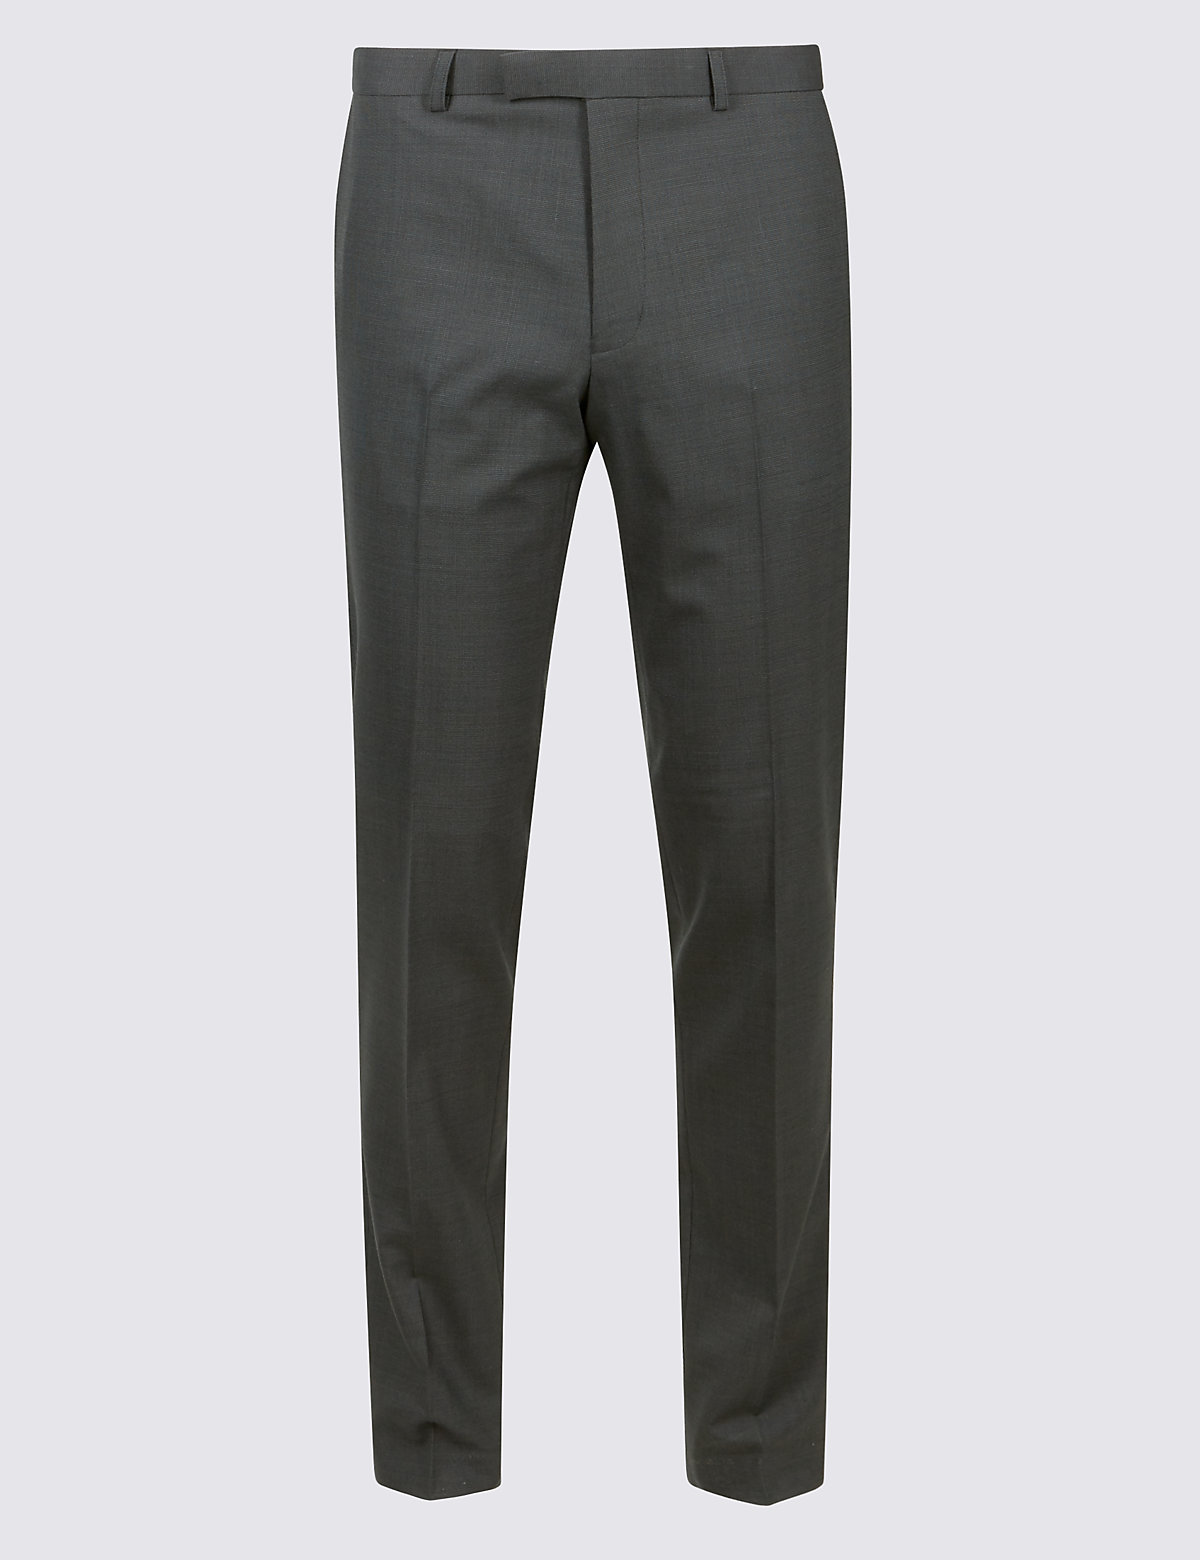 Marks & Spencer Charcoal Textured Modern Slim Fit Trousers